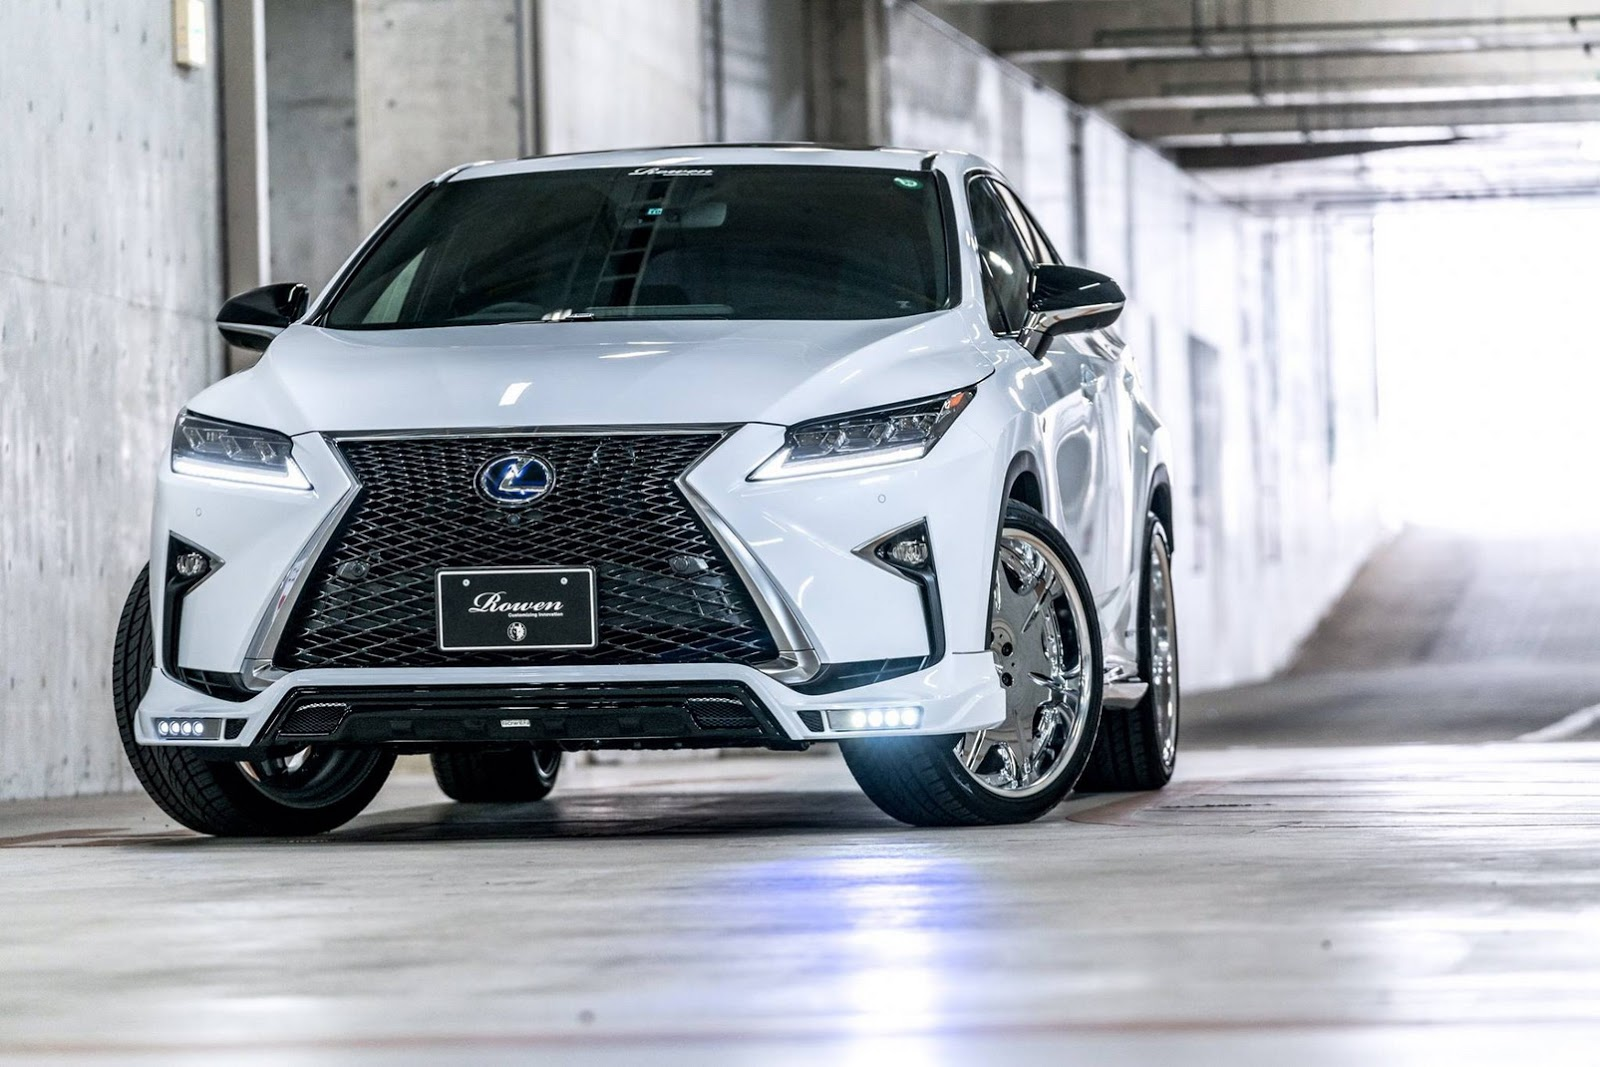 Lexus Rx F Sport >> Rowen dials up Lexus RX F Sport's visual aggression ...